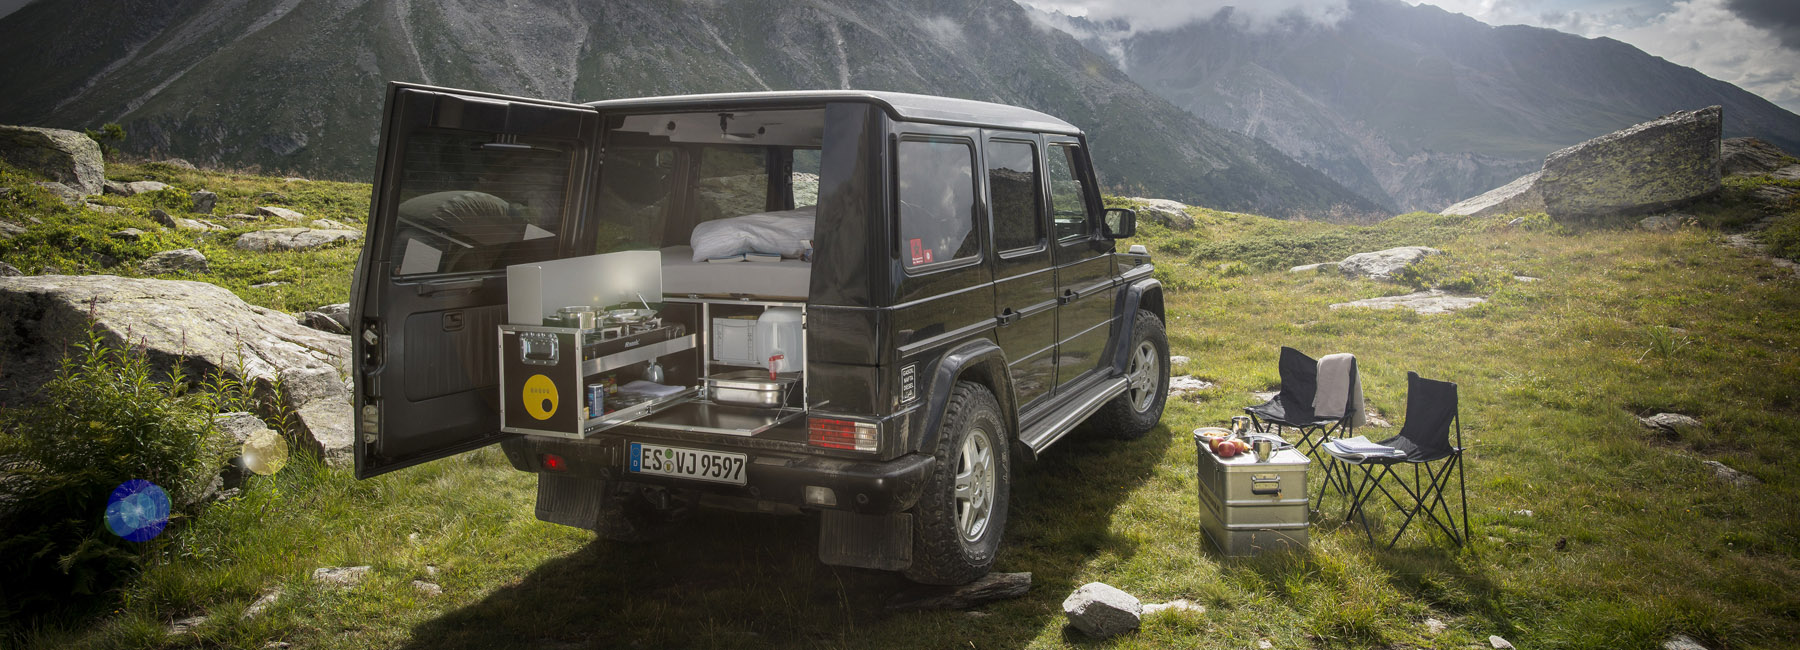 This G Box Kit Turns The Mercedes Benz Wagen Into A Camper In Just I Can Come Up With Big List Of Reasons Why Think Is Ultimate All Terrain Vehicle Money Buy